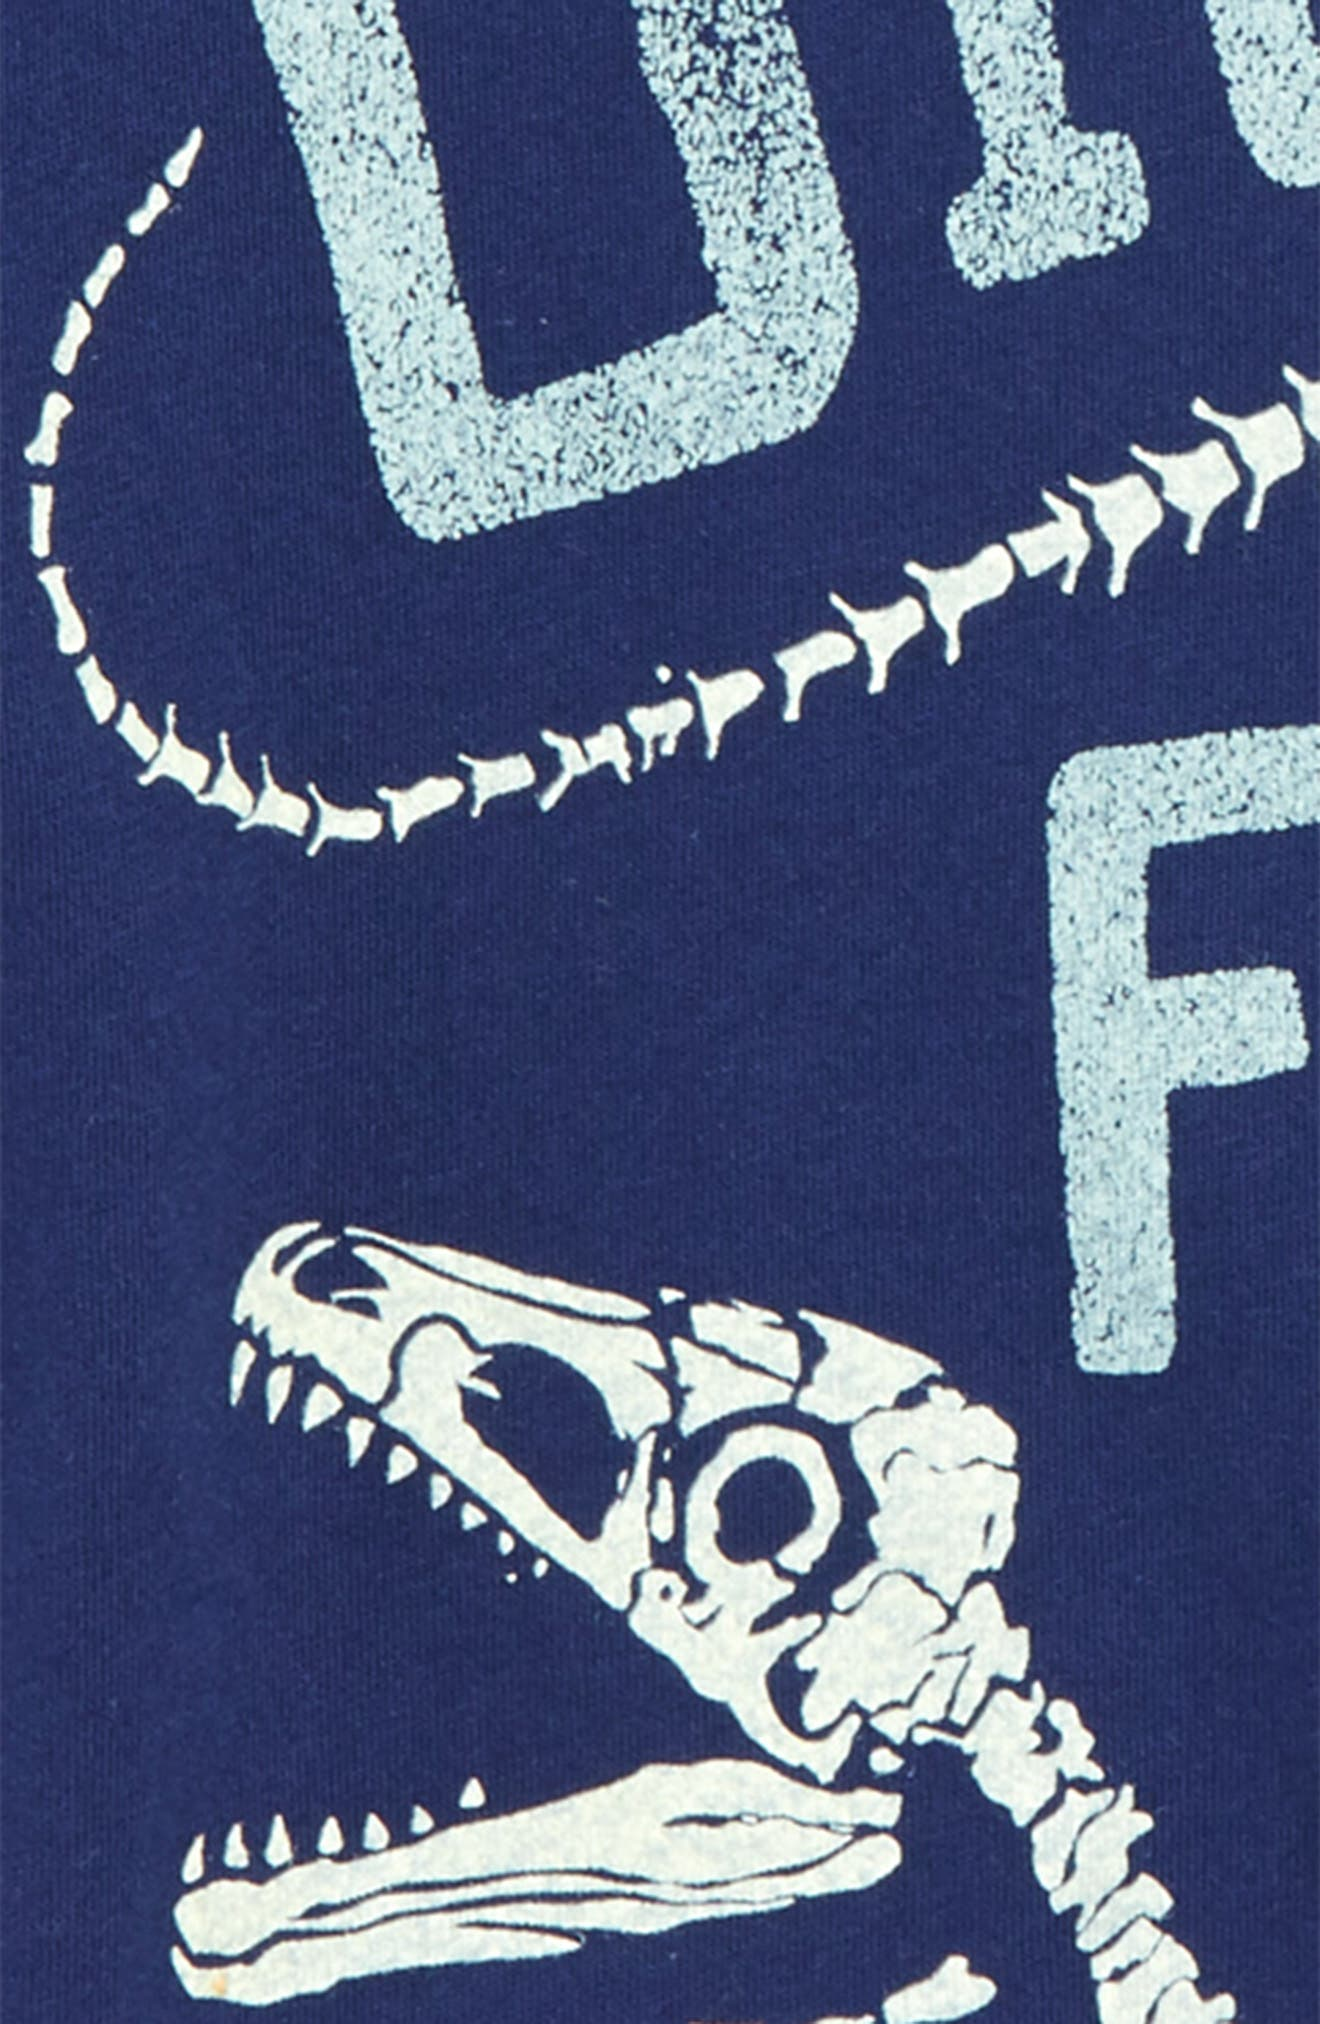 Digging for Dinos Glow in the Dark T-Shirt,                             Alternate thumbnail 4, color,                             410